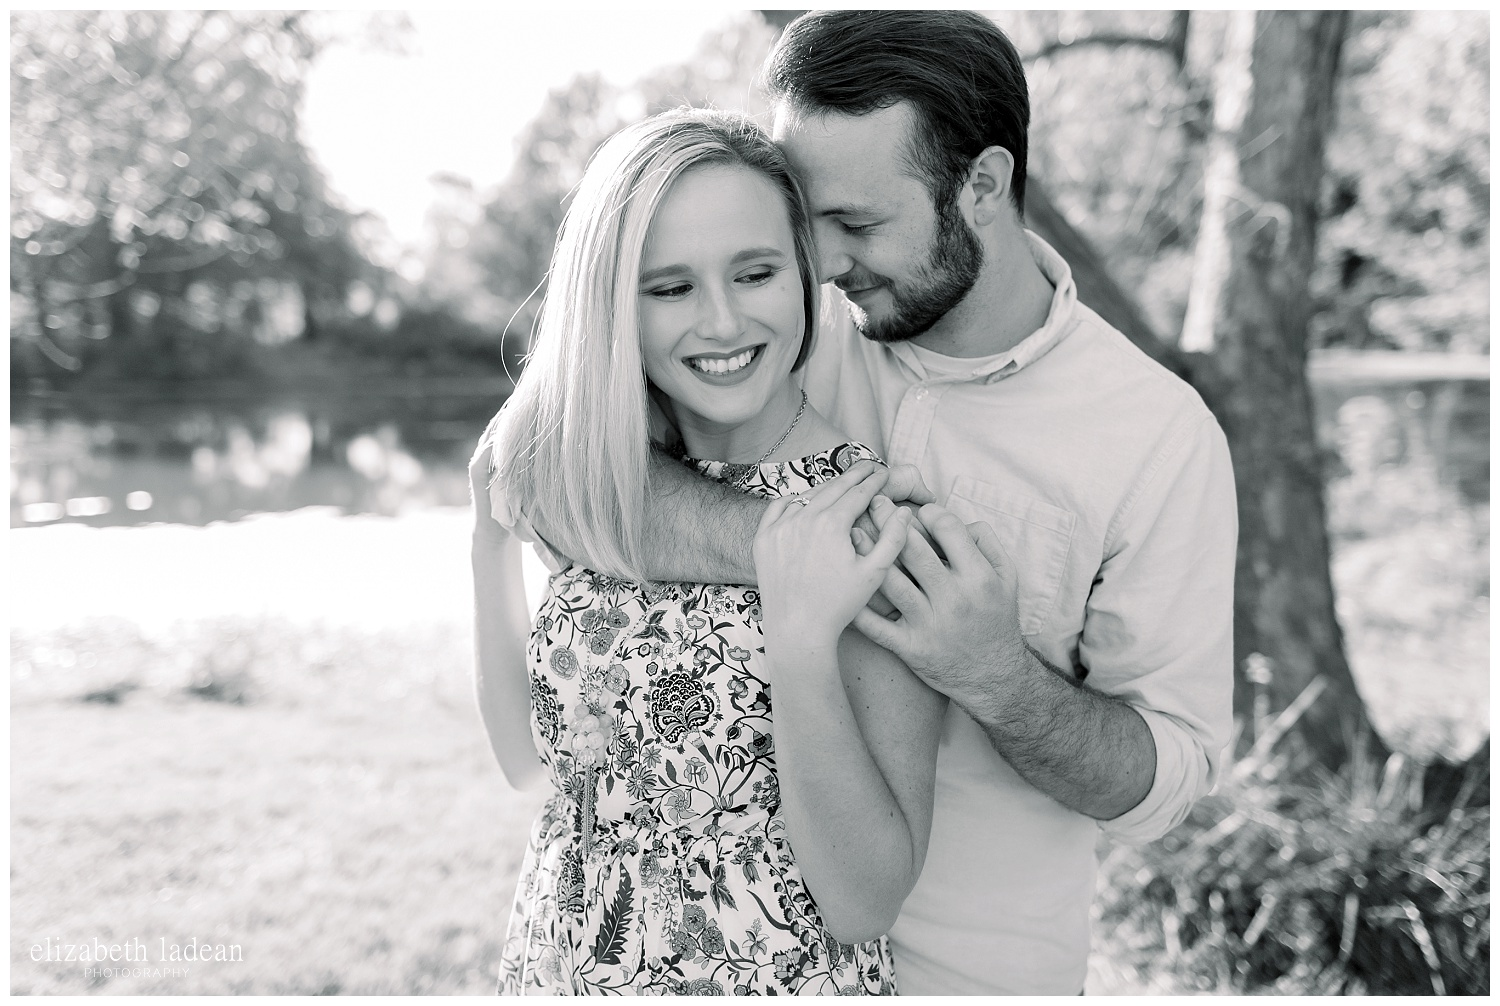 Kansas-City-Adventurous-Engagement-Photos-S+C2018-elizabeth-ladean-photography-photo_0367.jpg